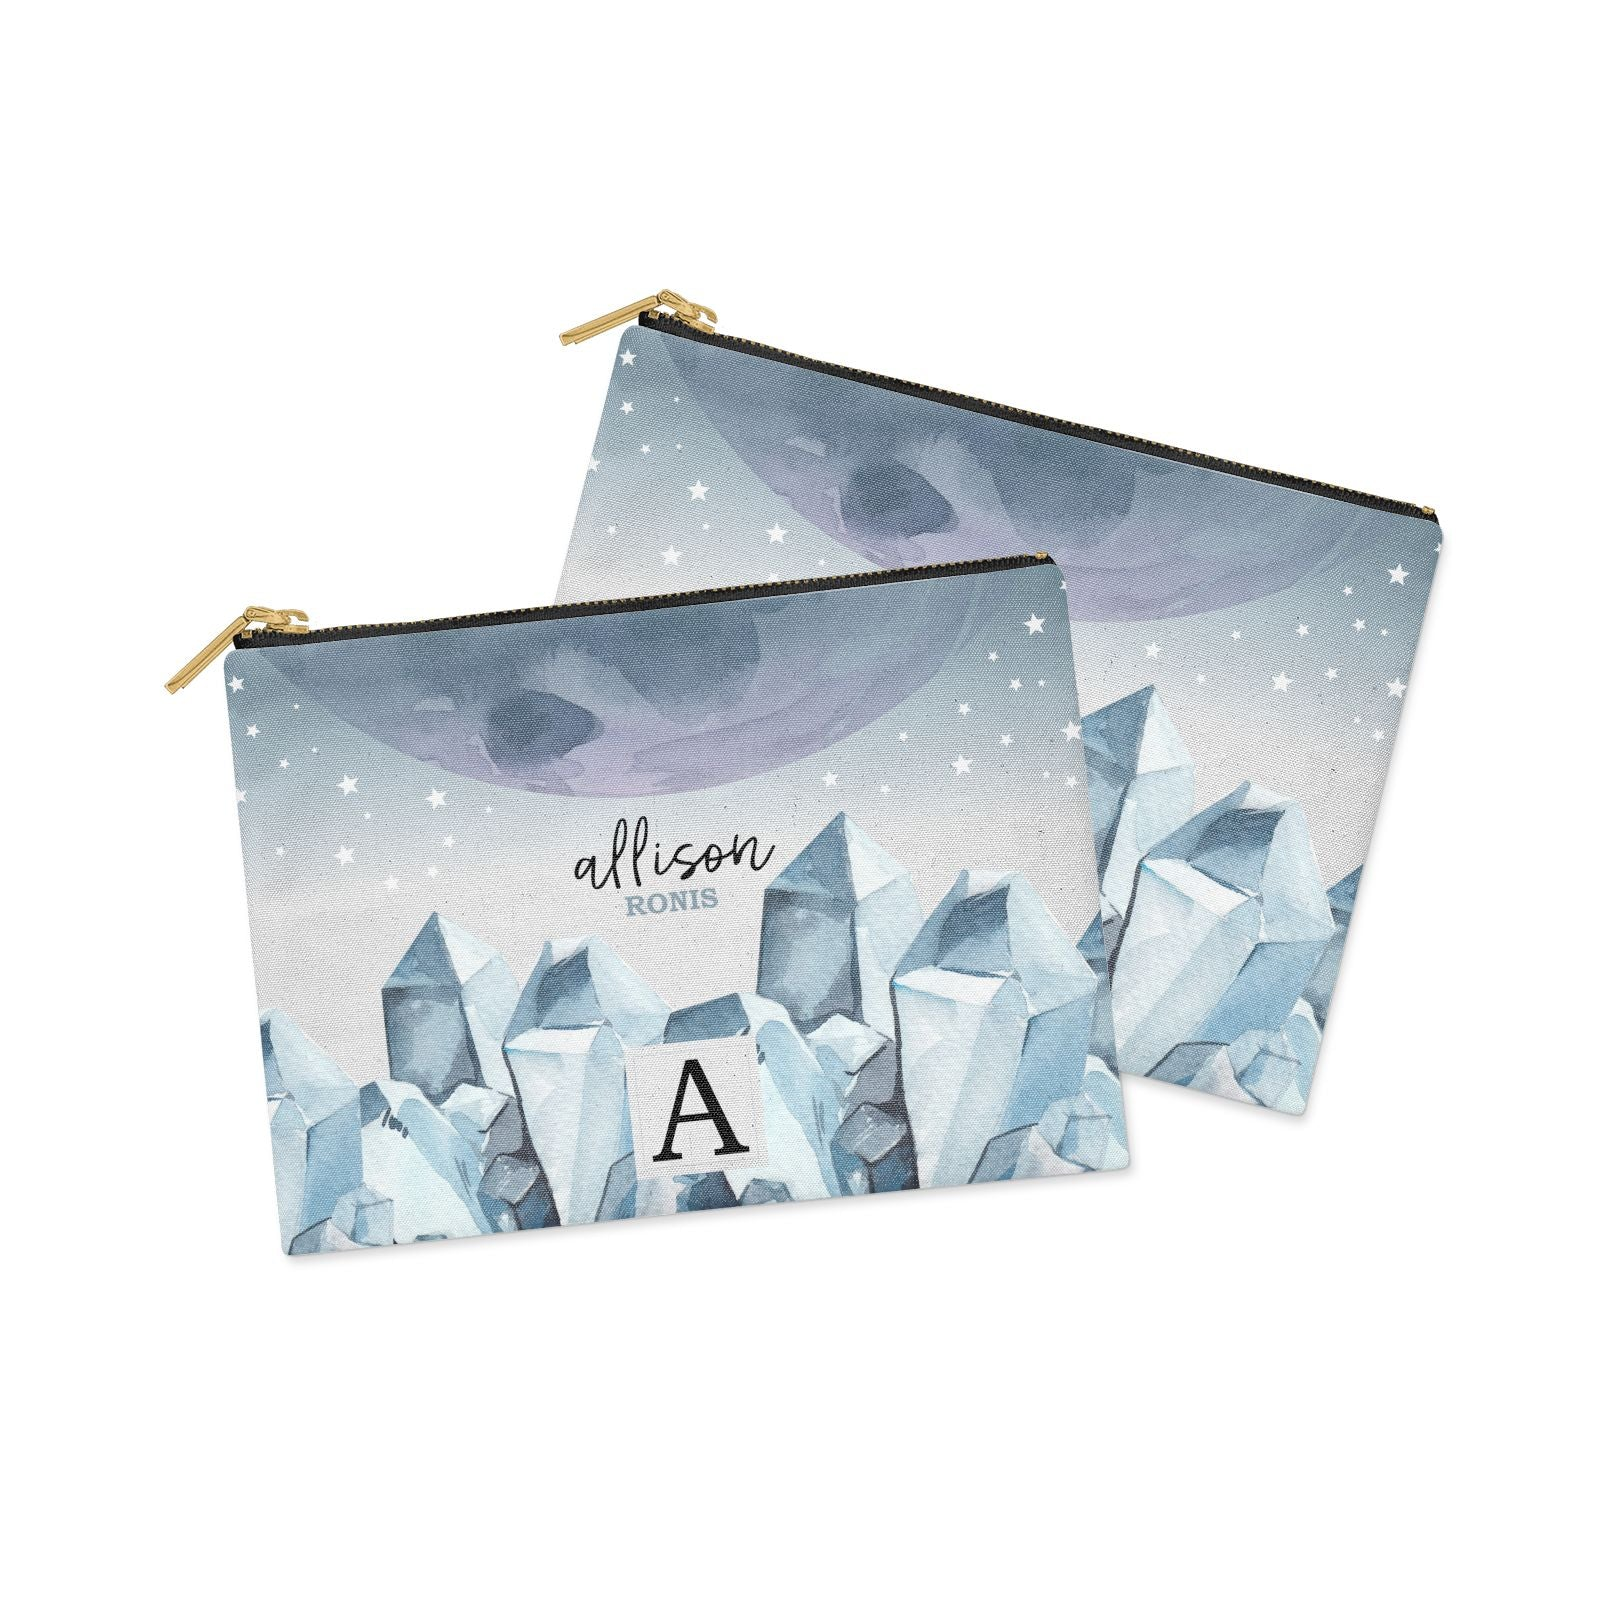 Lunar Crystals Personalised Name Clutch Bag Zipper Pouch Alternative View